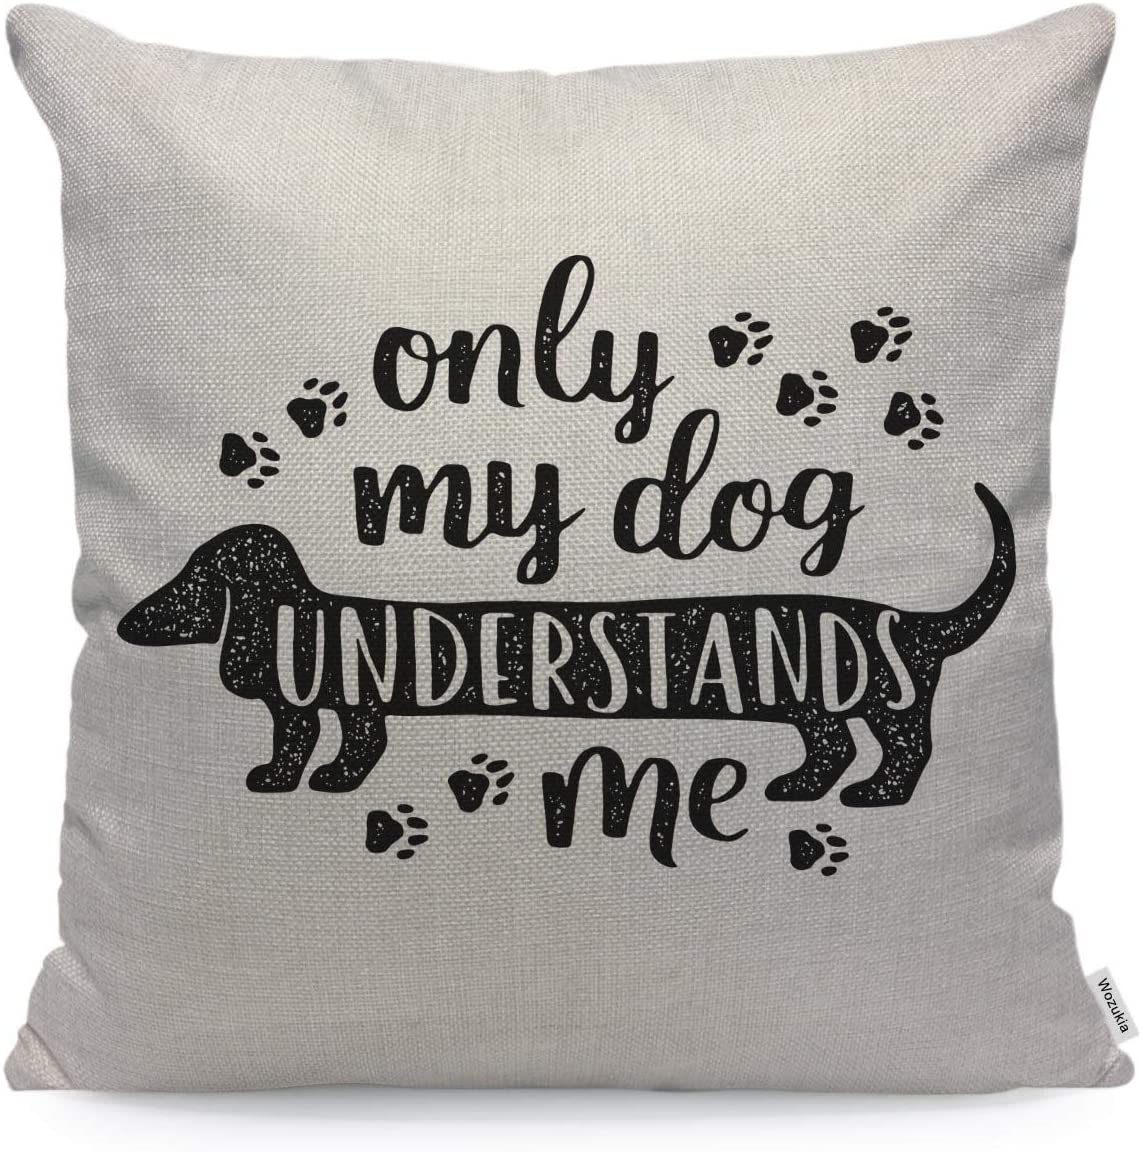 Wozukia Dog Throw Pillow Cover The Footprints Cartoon Lettering Saying Only My Dog Understands ME Vintage Designs Pillow Case 18x18 Inch Cotton Linen Square Cushion Decorative Cover for Sofa Bed